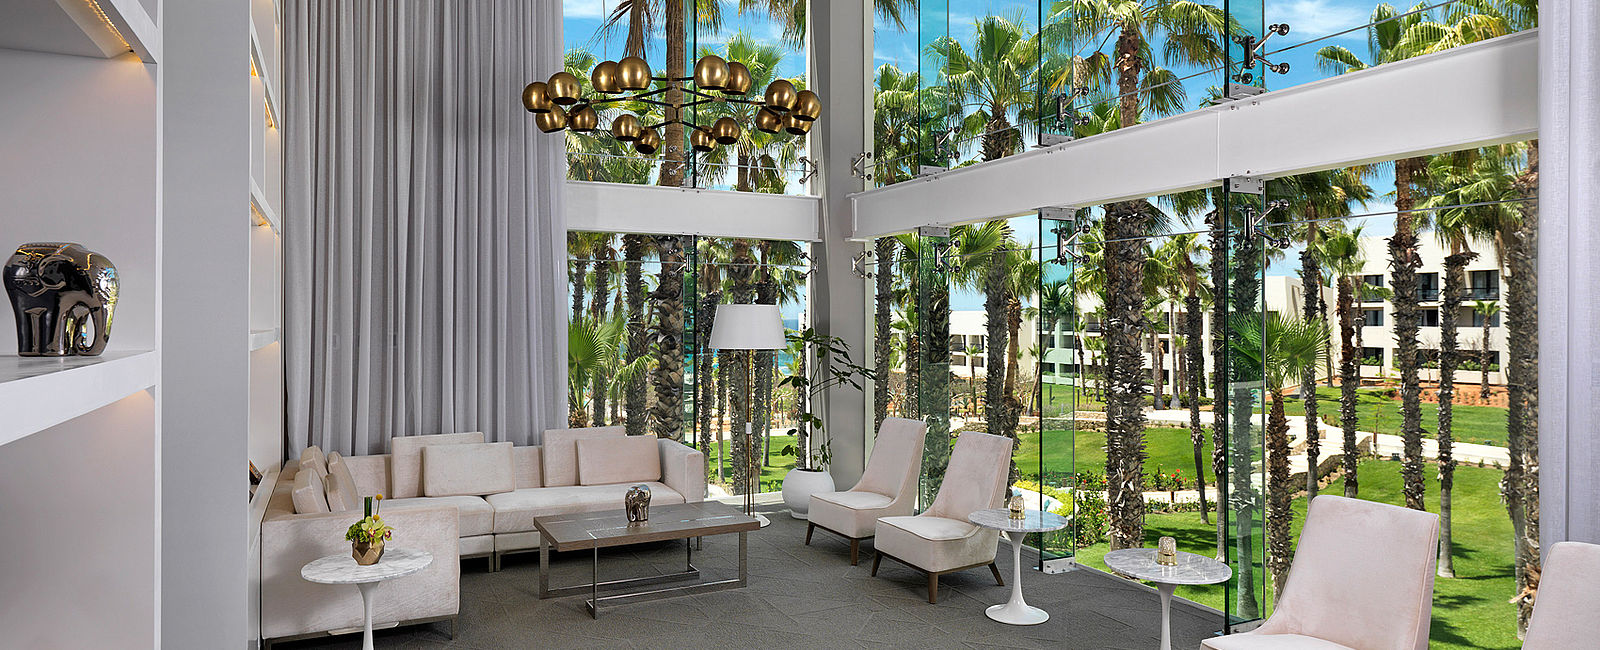 Paradisus By Meliá Connoisseur Circle News